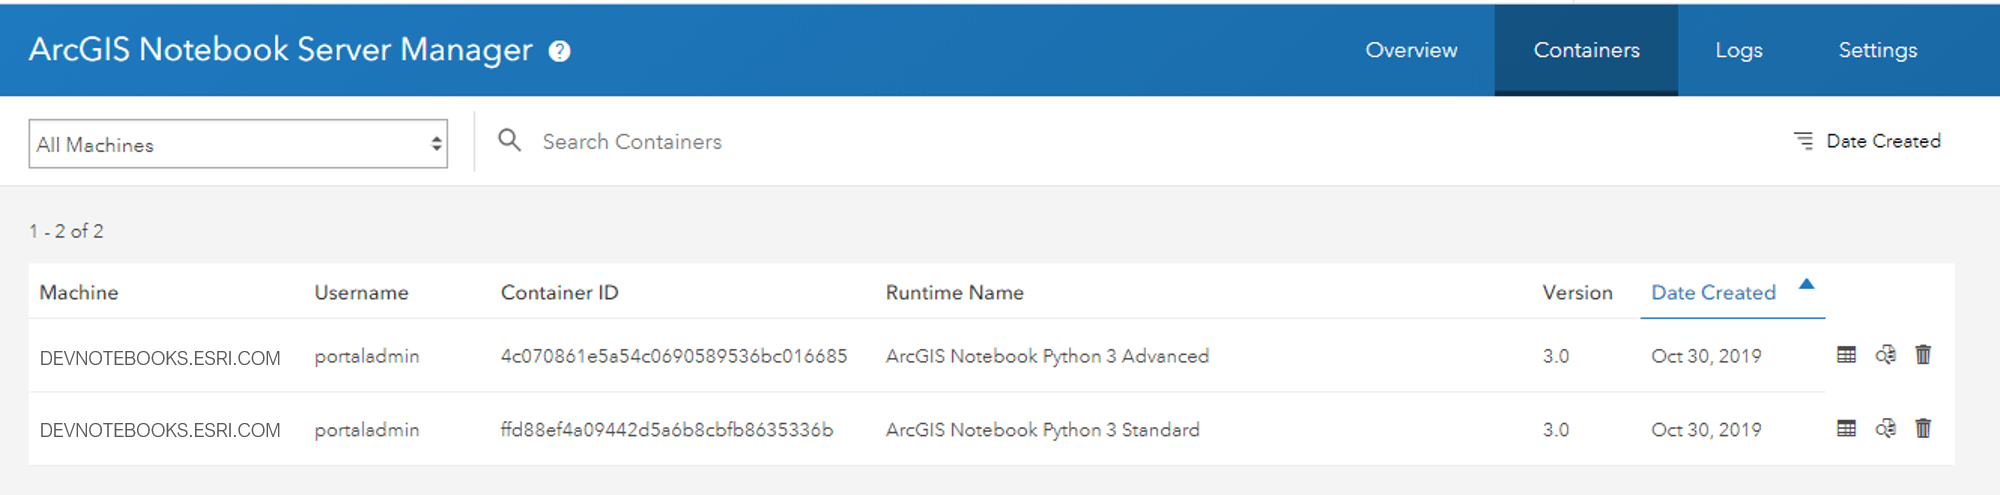 Image of the Containers page in the Notebook Server Manager app